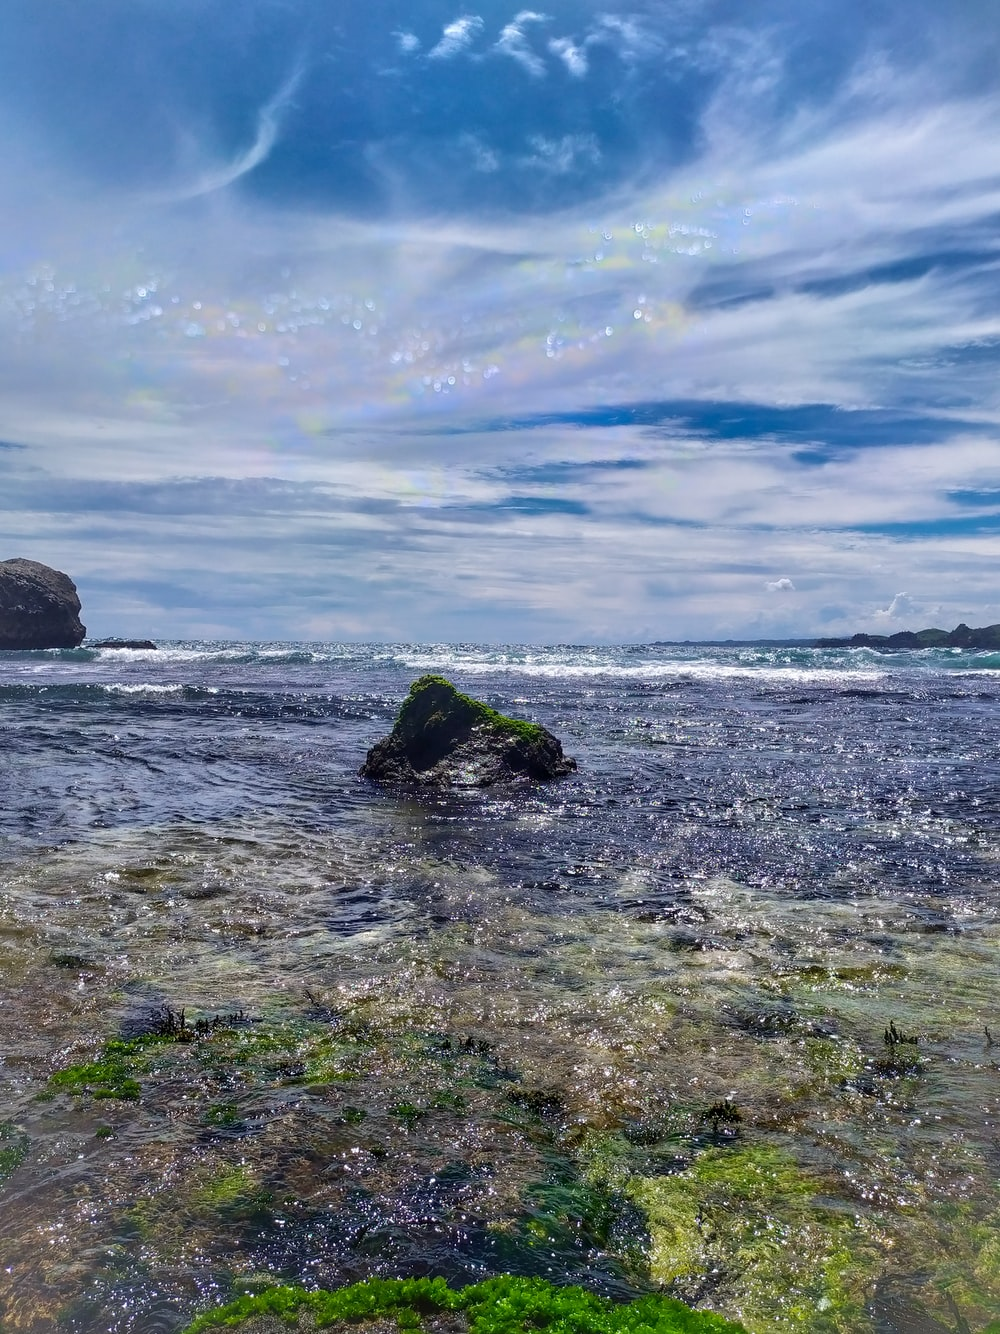 green and black rock formation on sea shore under blue and white sunny cloudy sky during